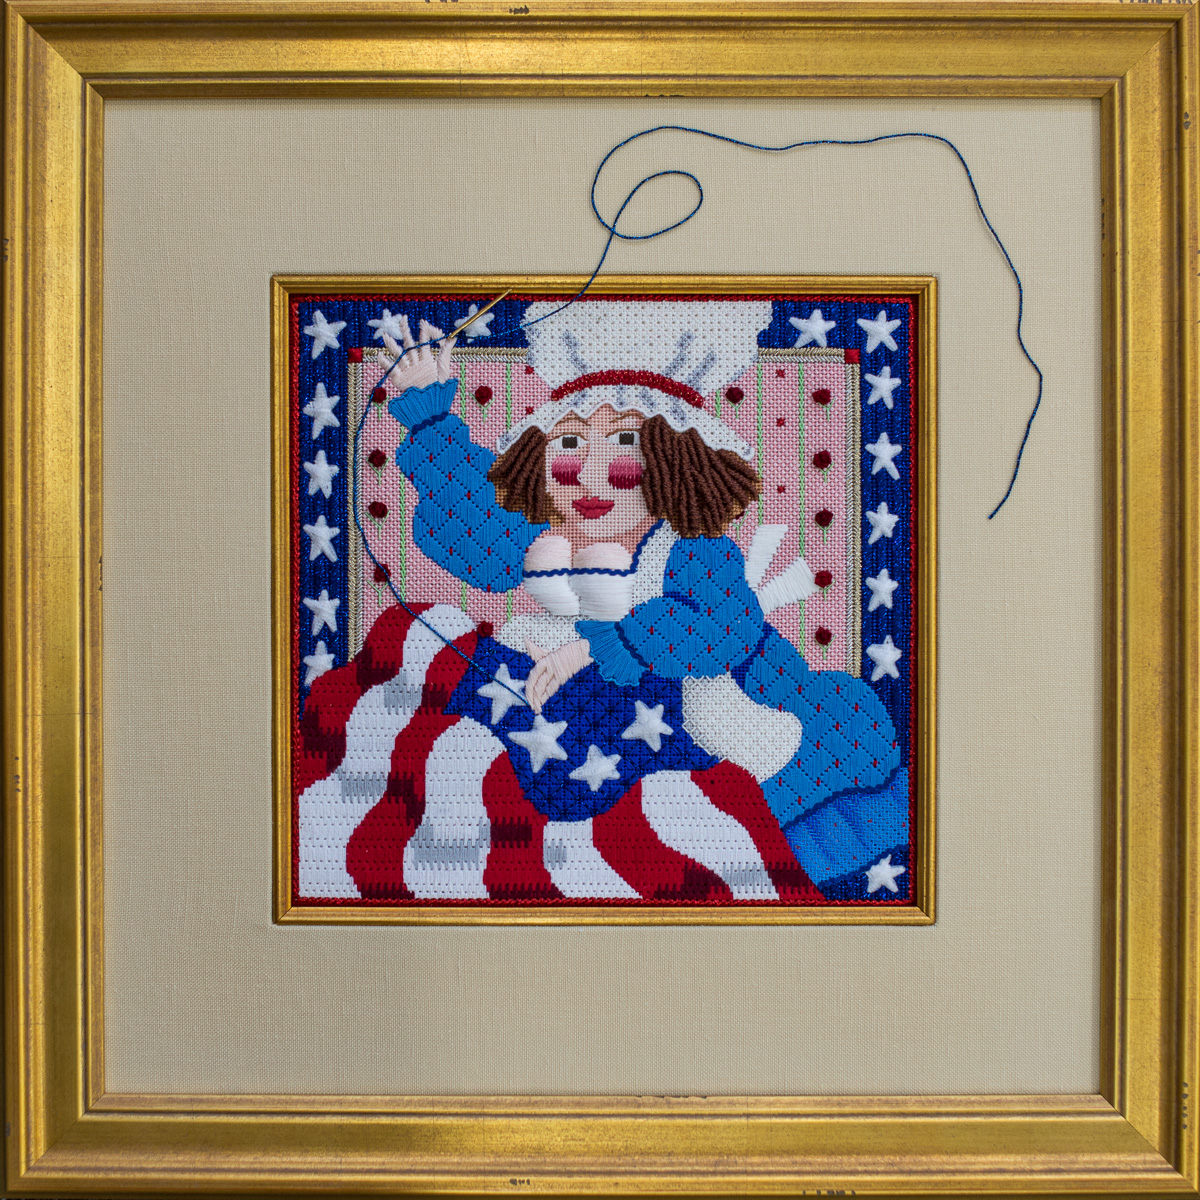 Custom picture framing in memphis tn t clifton art yes we have framed a lot of interesting treasures bronze star musical instruments ketubahs christening gowns sports jerseys fine art childrens art jeuxipadfo Gallery